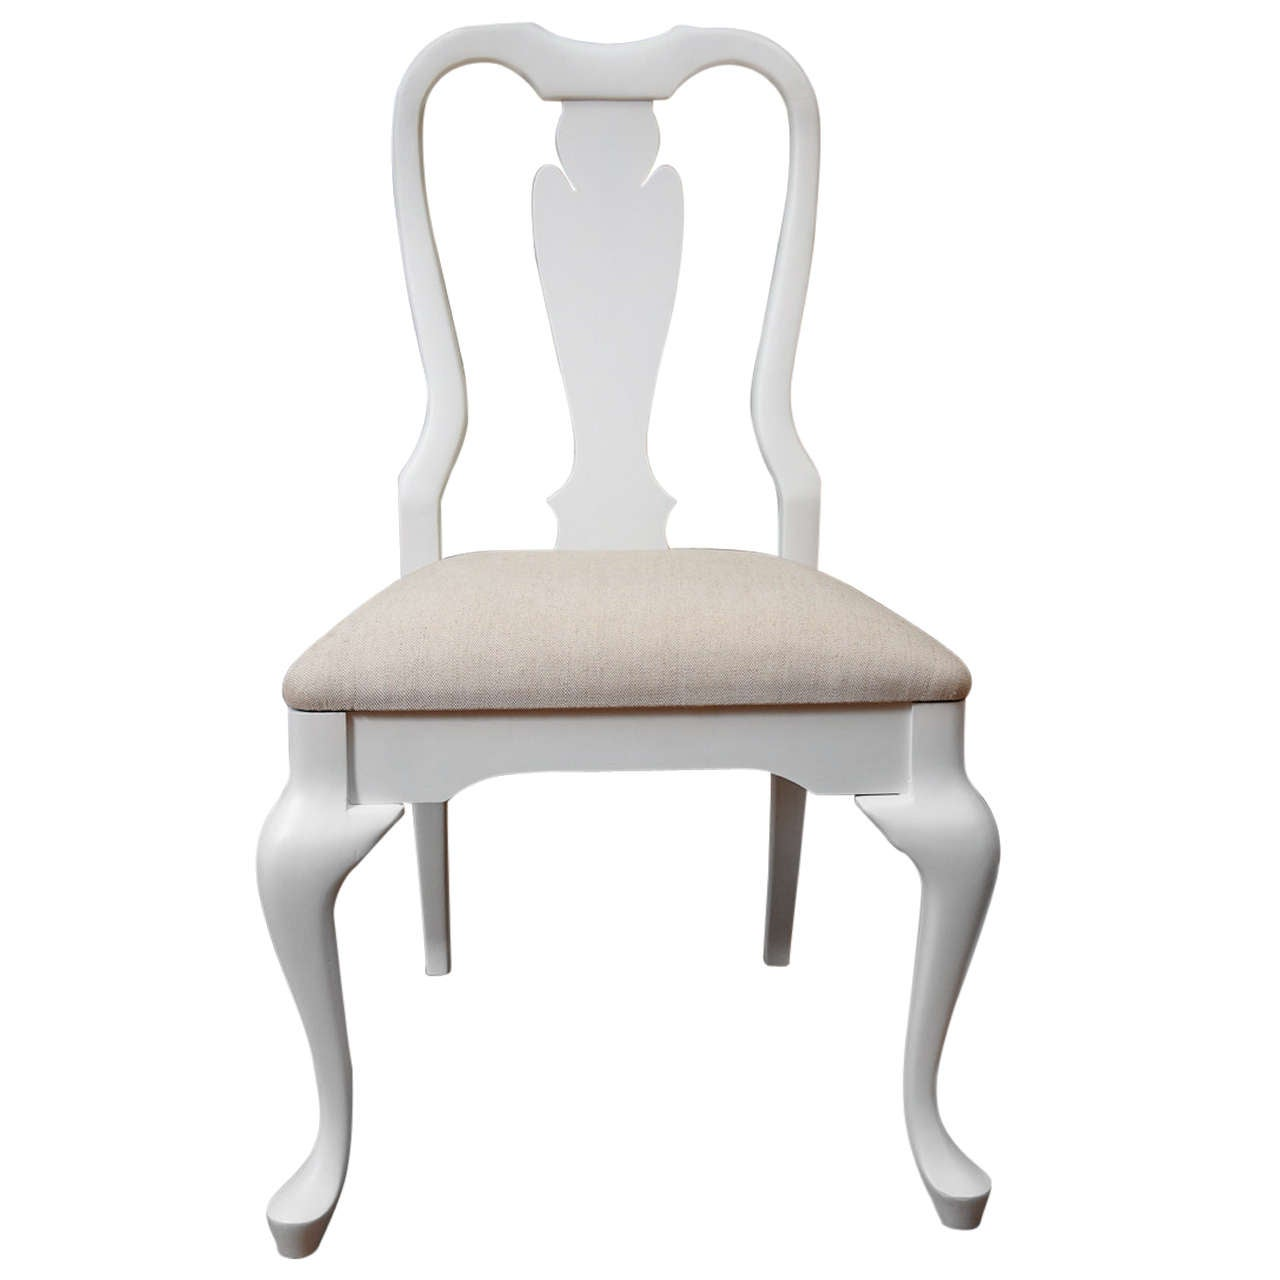 Queen Anne Style Chair at 1stdibs